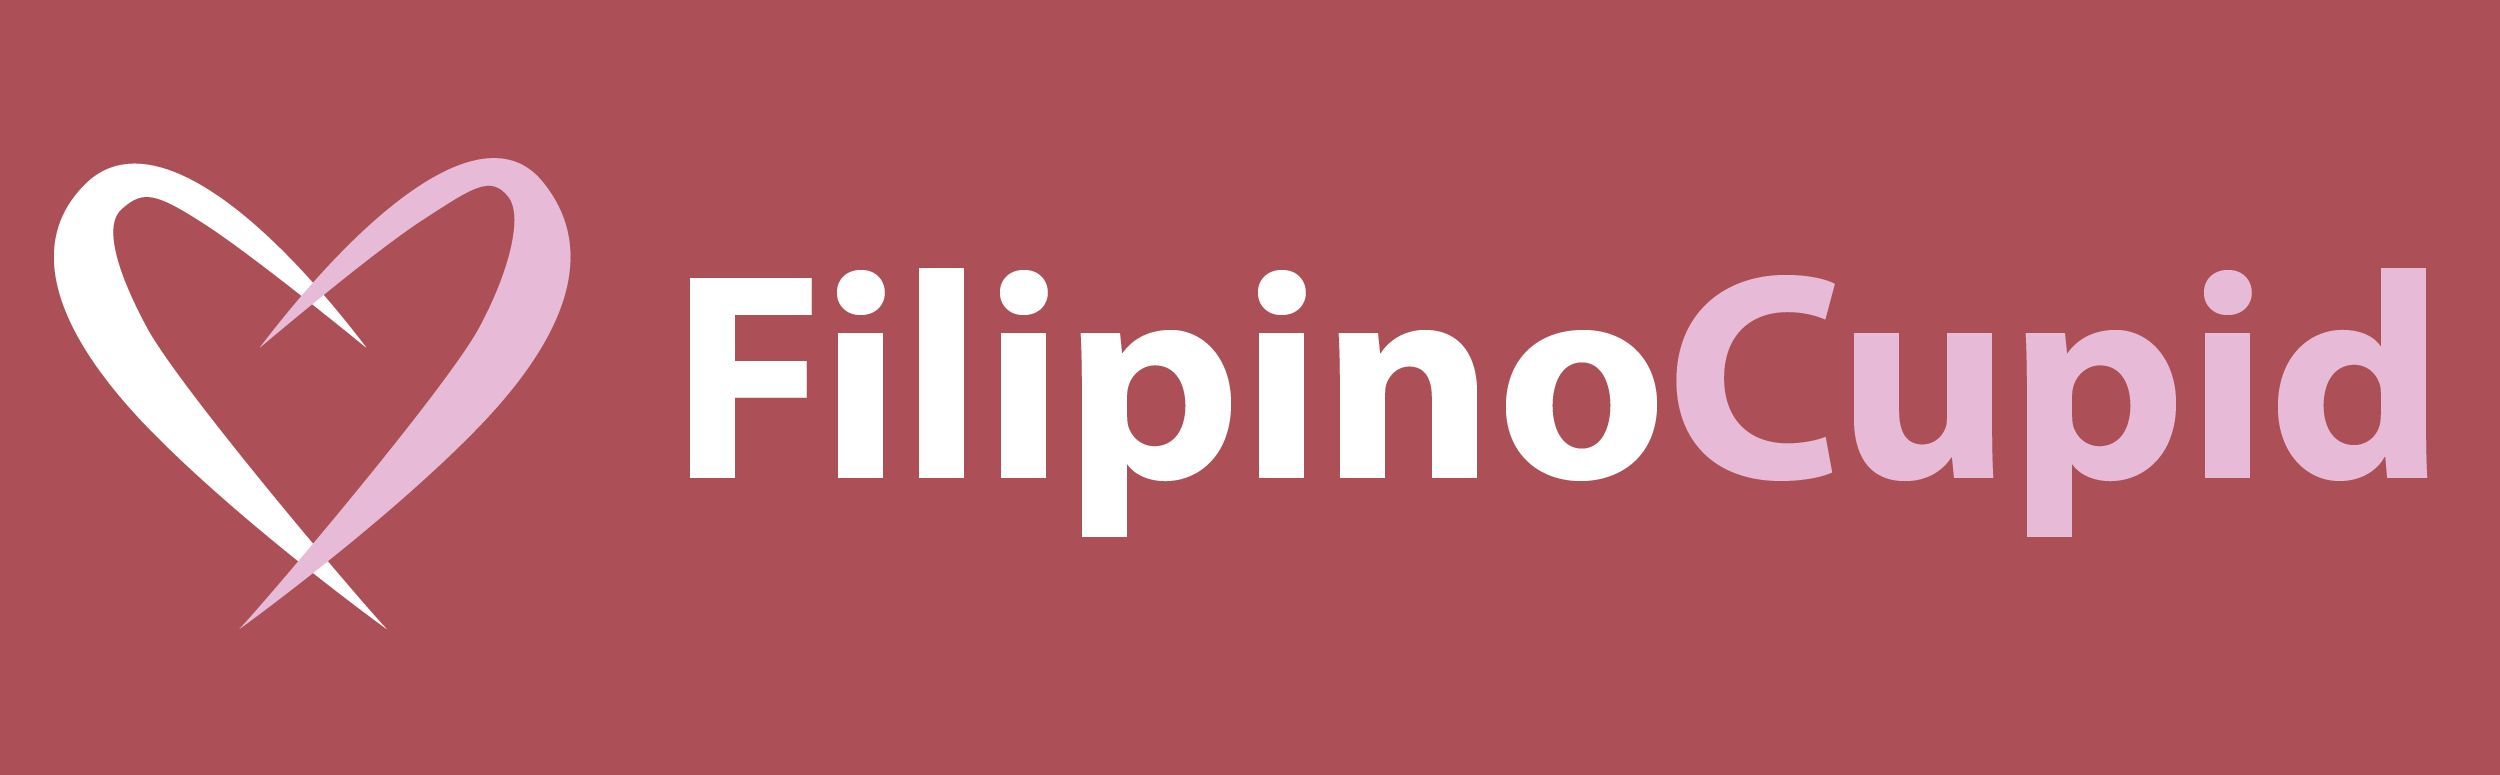 FilipinoCupid Logo